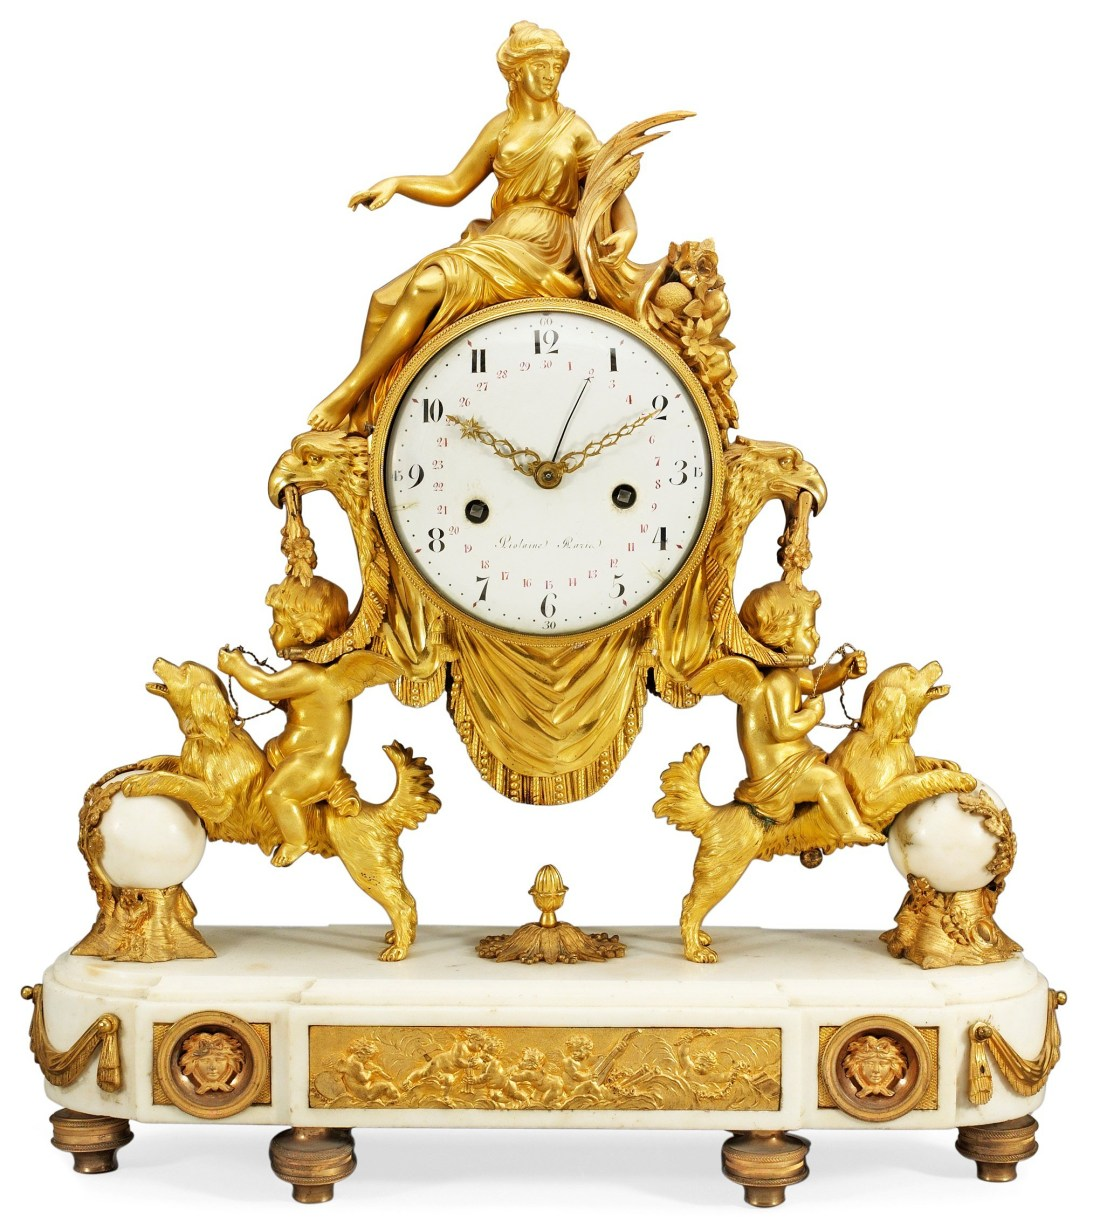 Mantel clock with a profiled plinth with a relief of musician putti